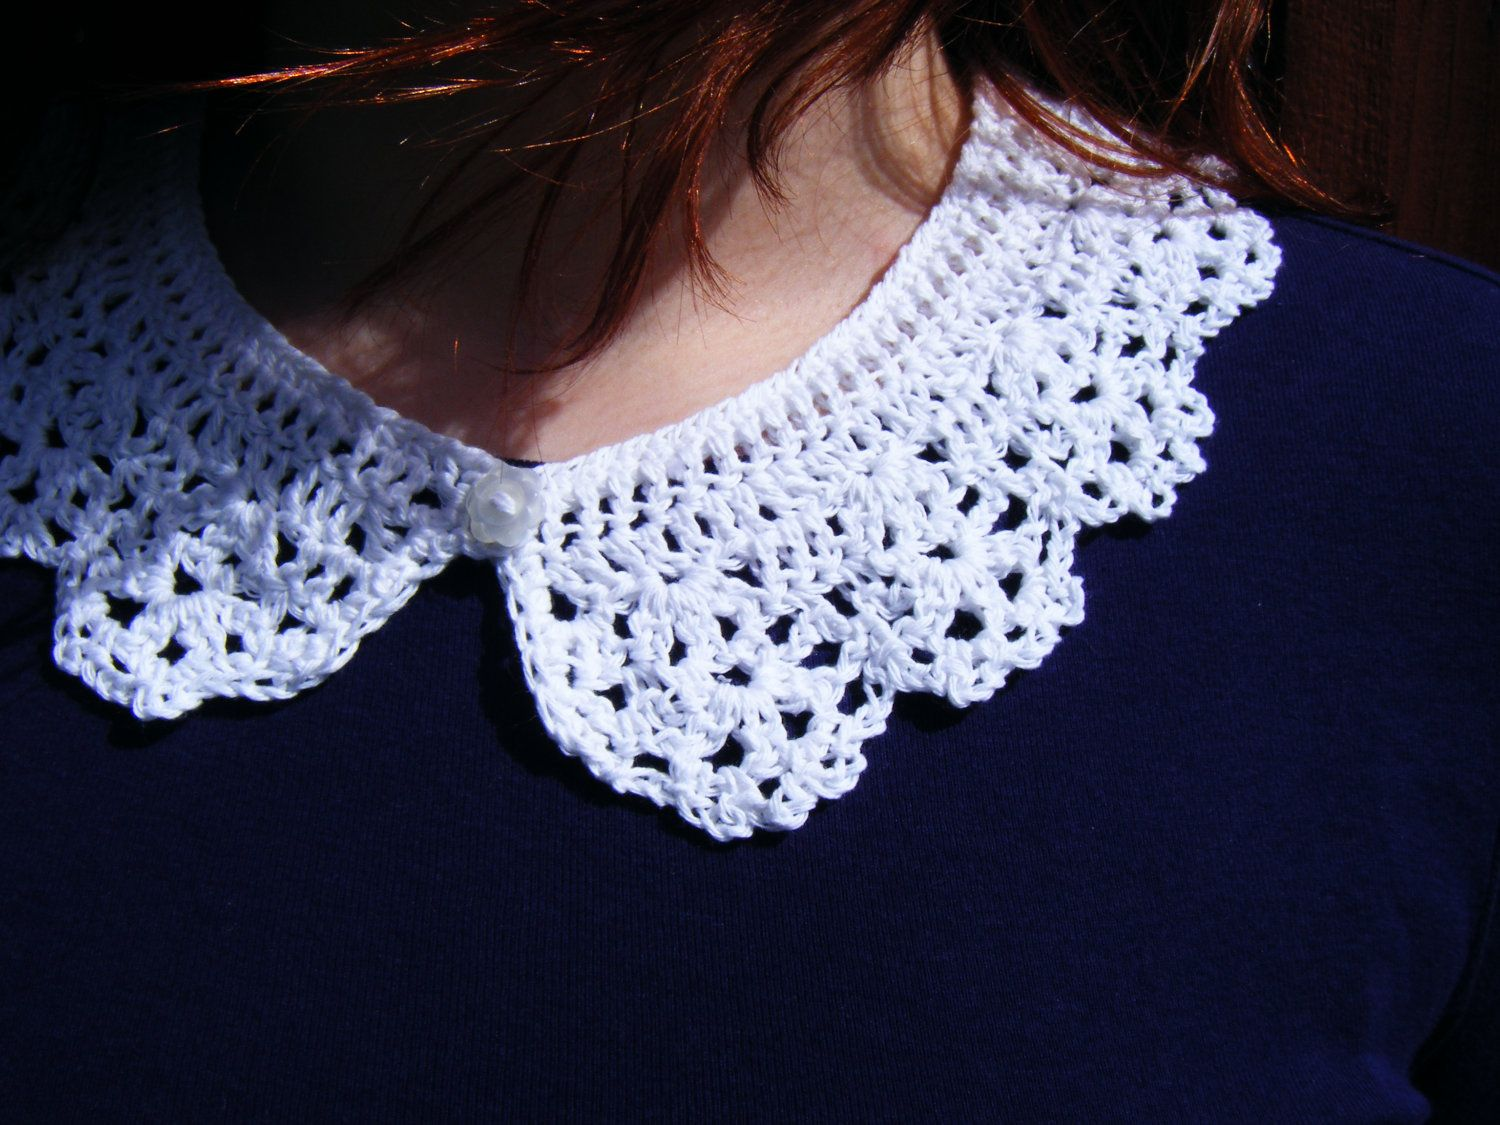 Collar love me some outfits pinterest lace lace collar and white crochet collar necklace peter pan detachable by corcra bankloansurffo Image collections